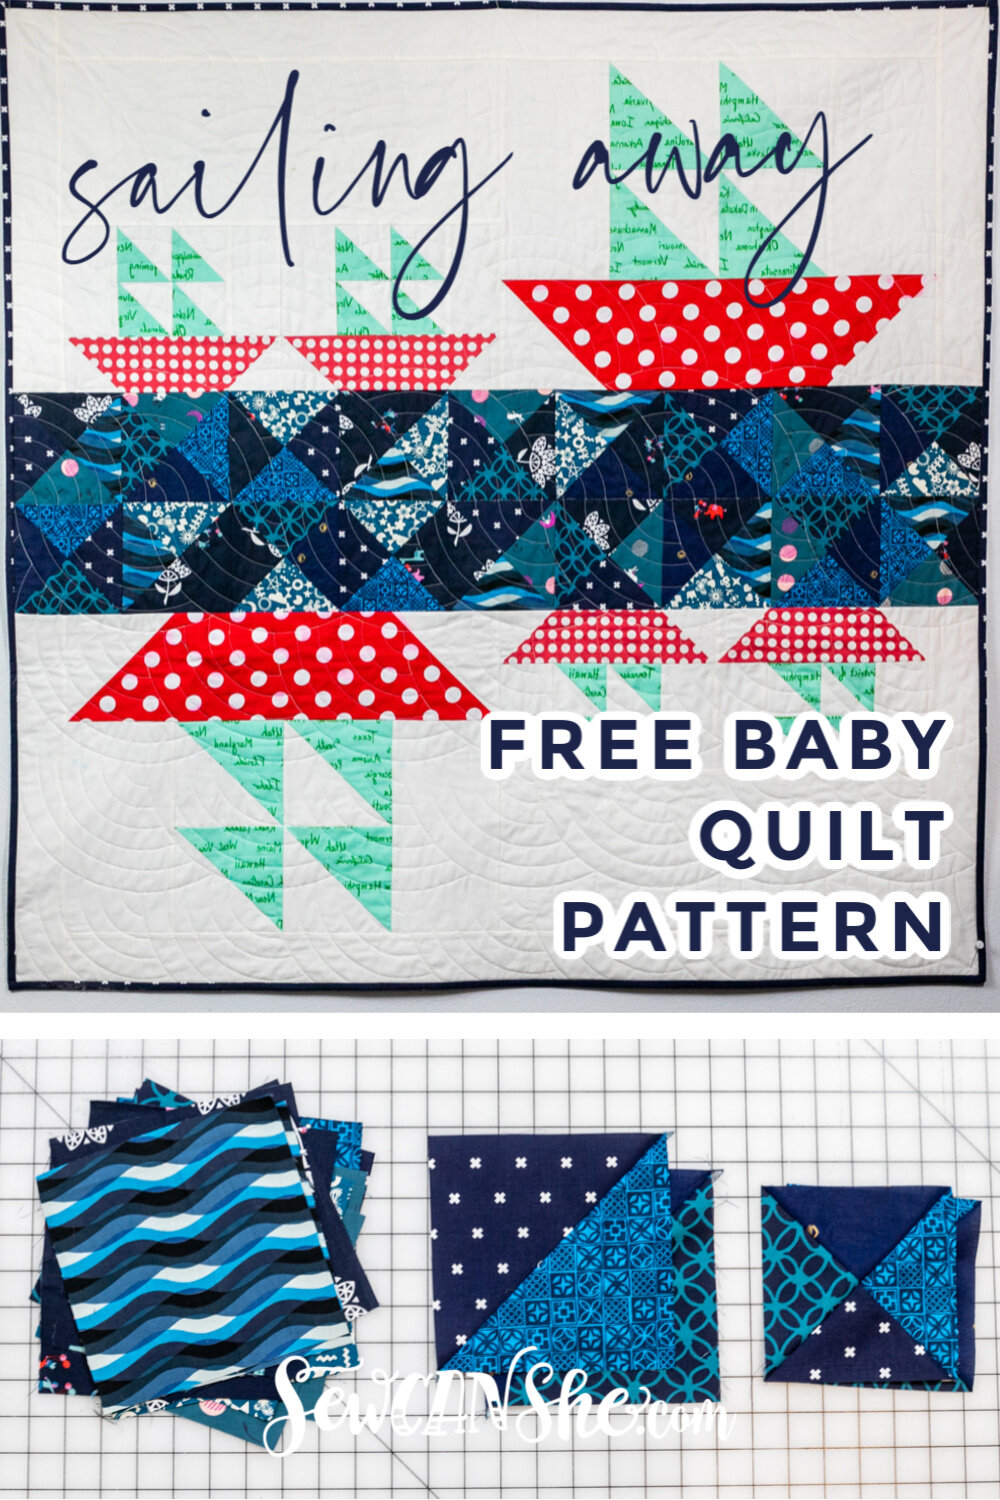 free baby quilt pattern with sailboat blocks